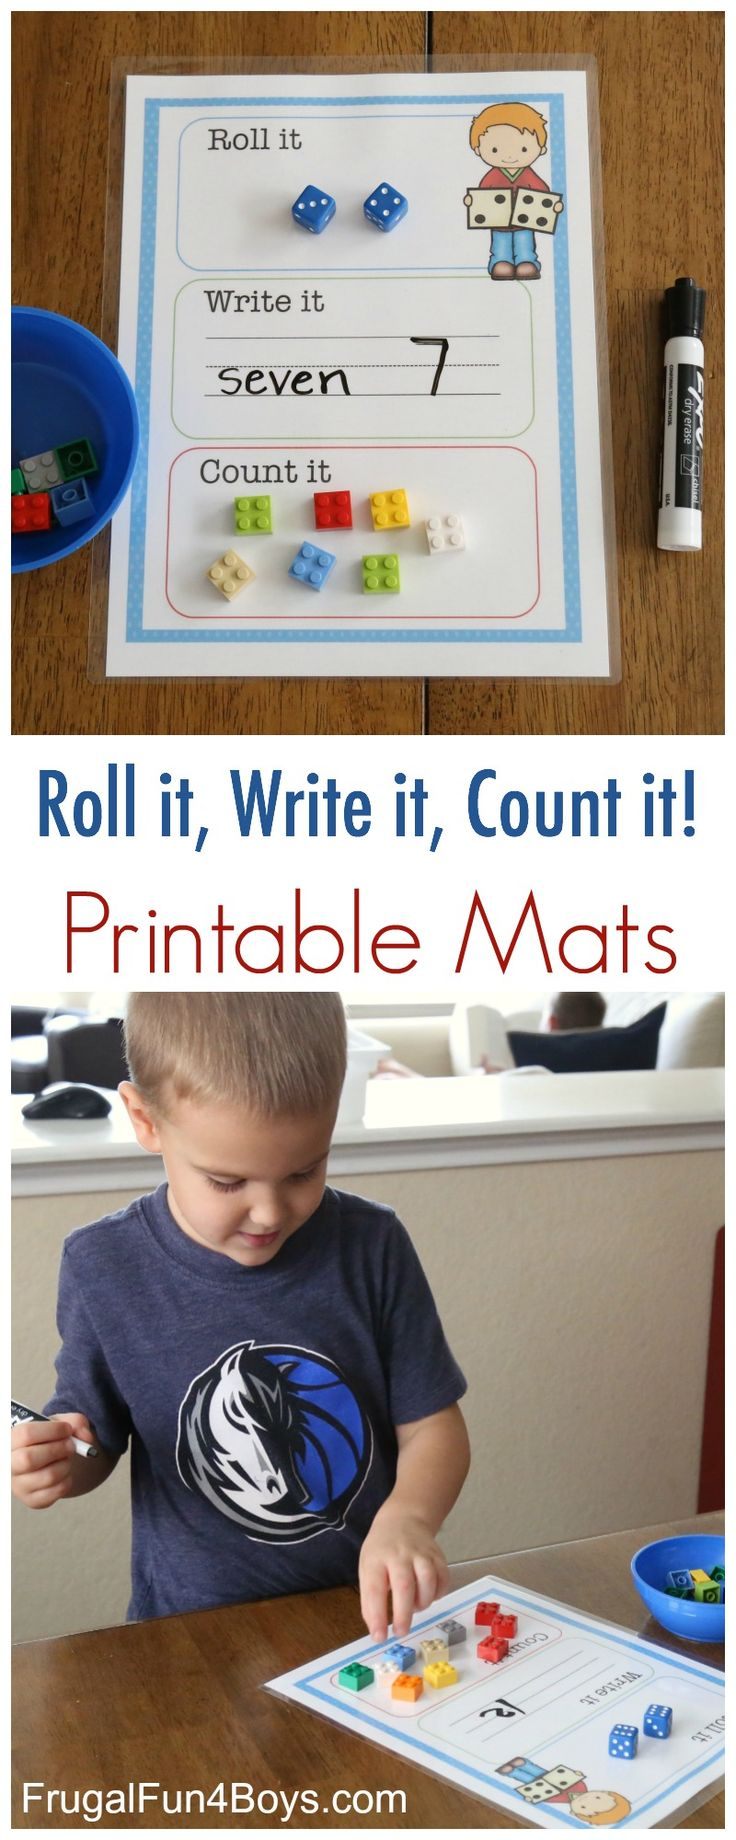 Here's a math activity that is guaranteed to be a hit! Print these Roll it, Write it, Count it mats – see the link at the bottom of the page. My 4.5 year old has been loving this, especially the marker part and the erasing part. And the M & M's that we used for...Read More »